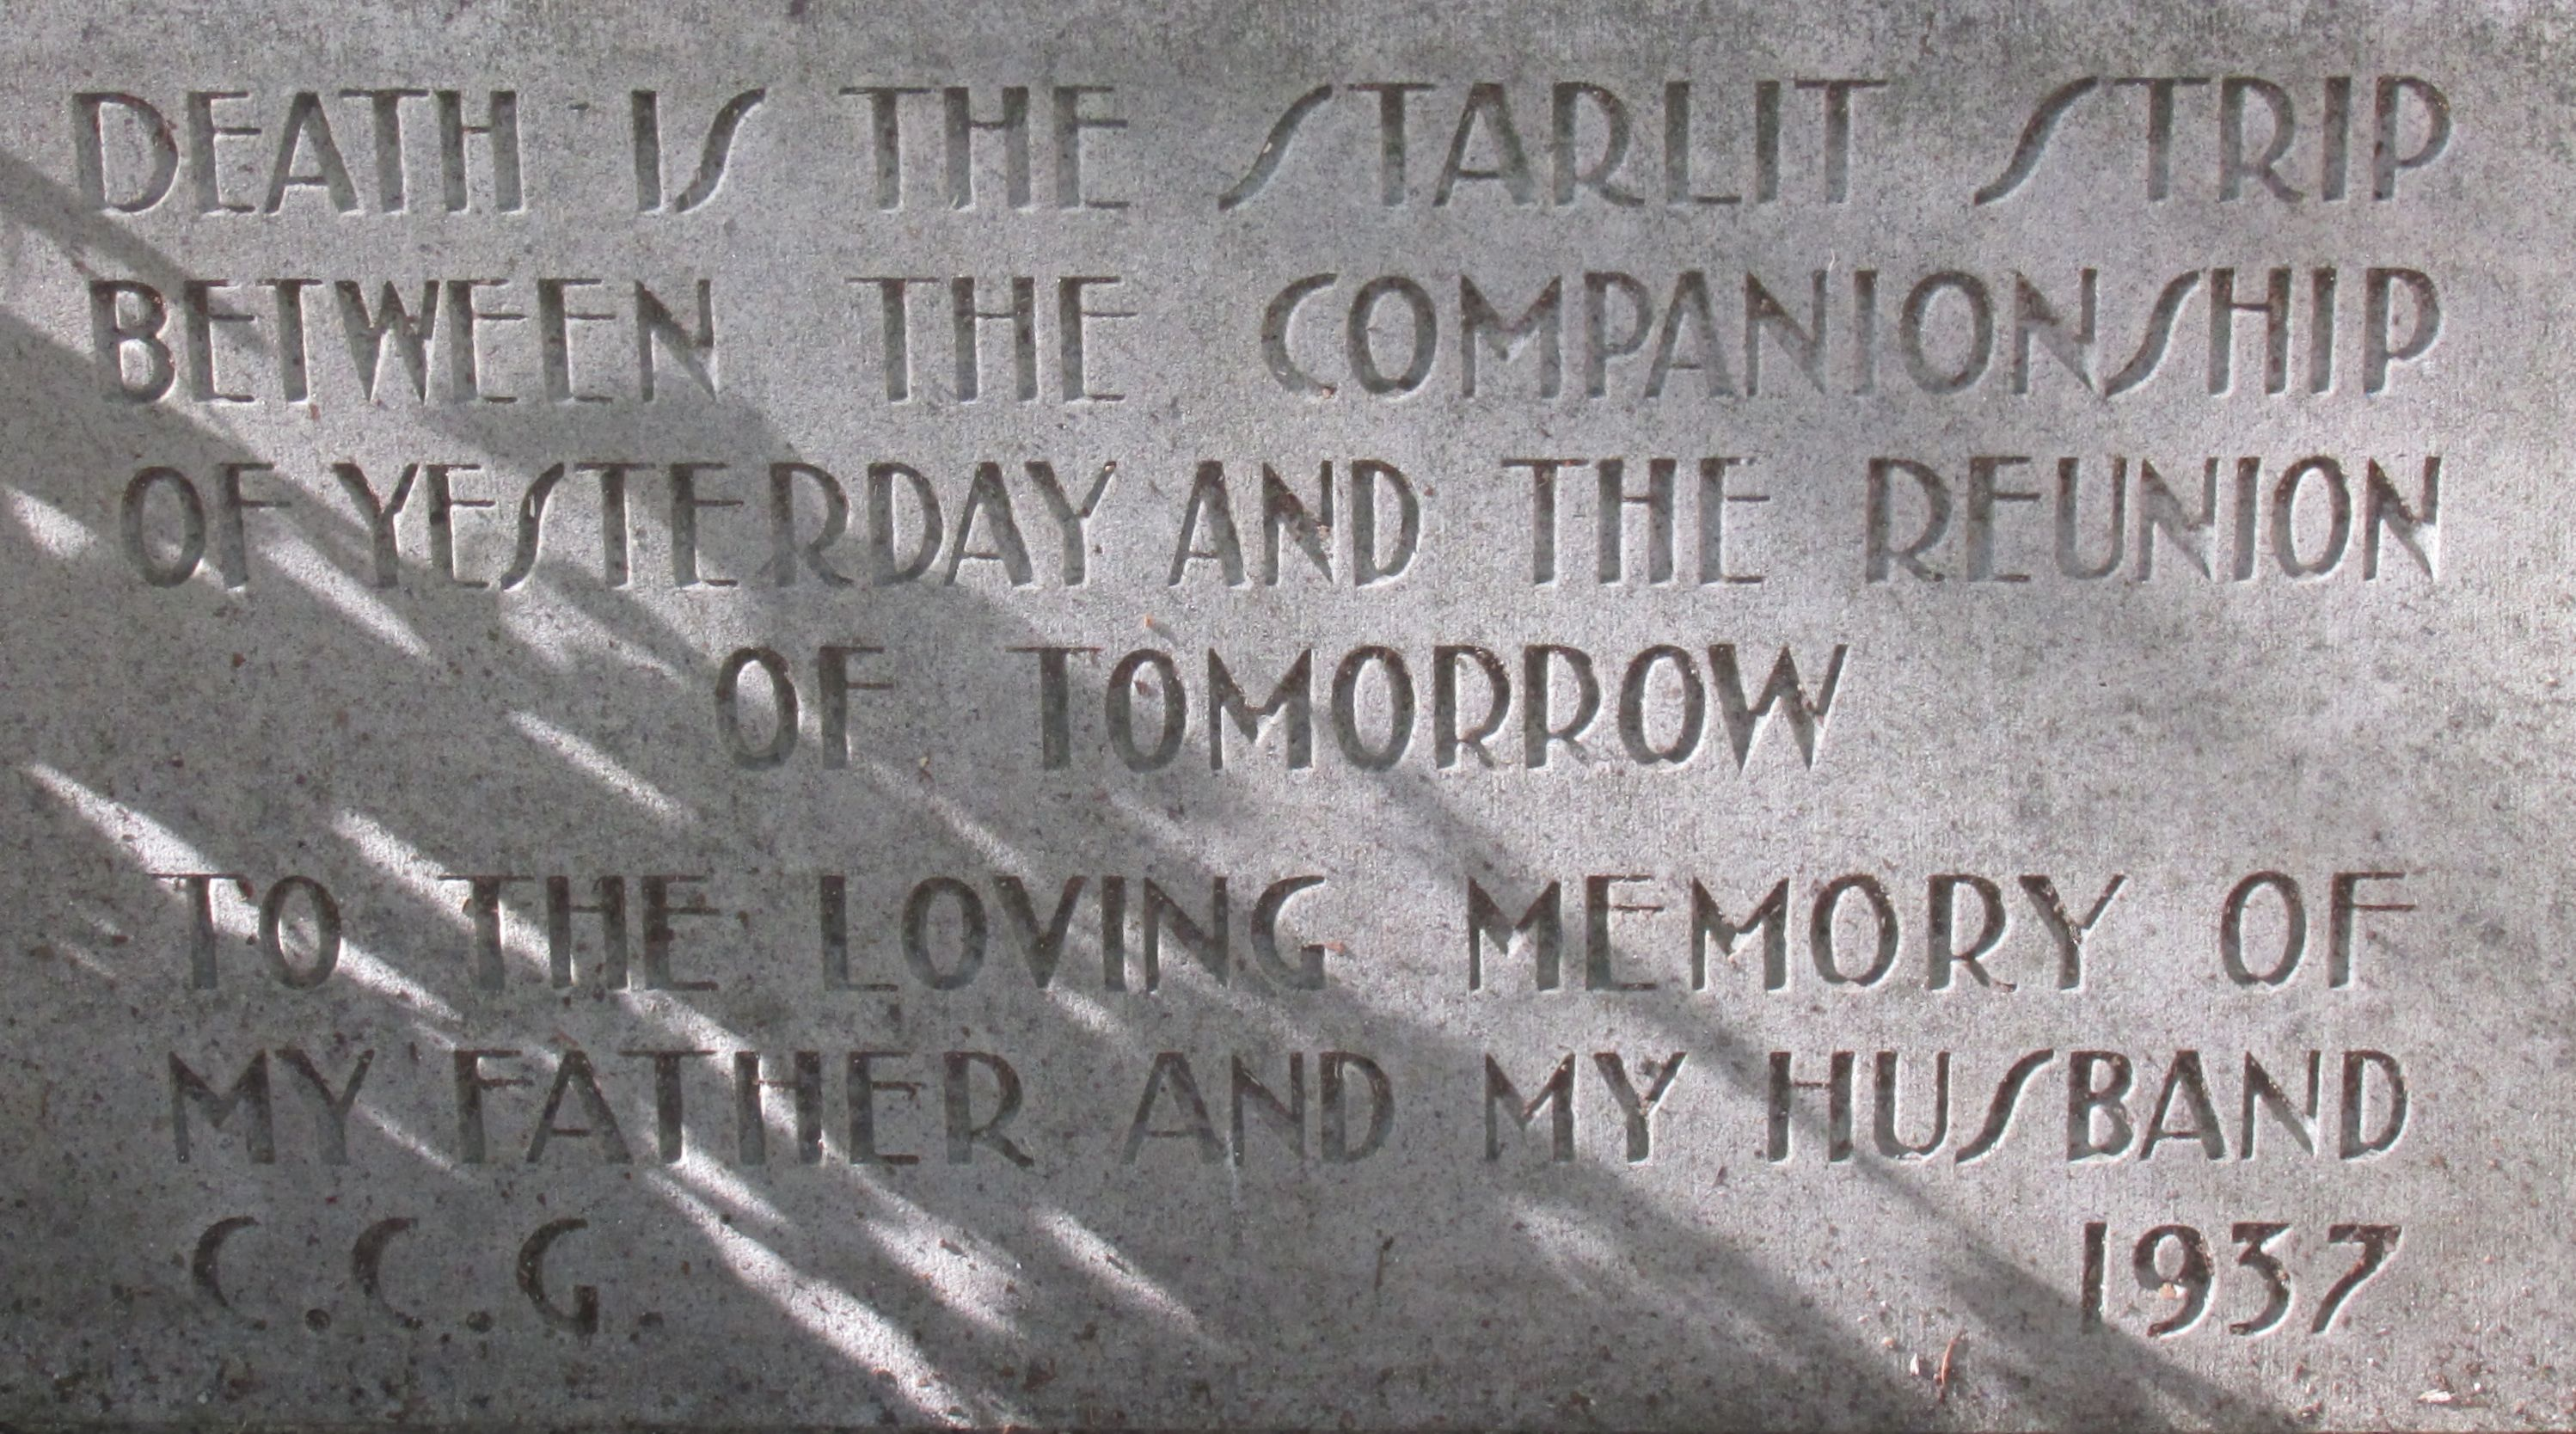 Cemetary - Mark Twain's grave poem detail